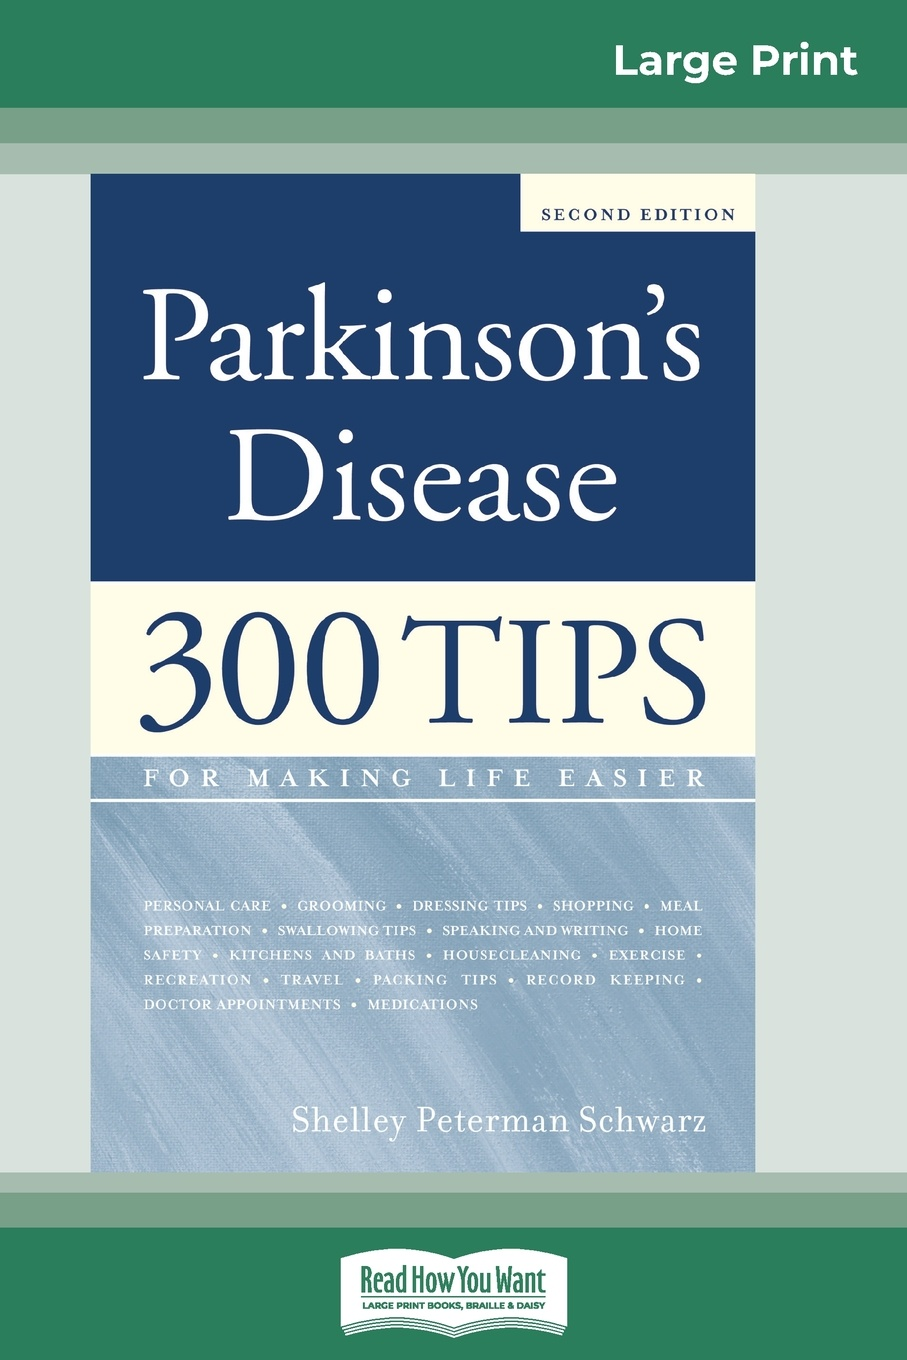 Shelley Peterman Schwarz Parkinson's Disease. 300 Tips for Making Life Easier (16pt Large Print Edition) patricia lightner parkinson s disease and me walking the path